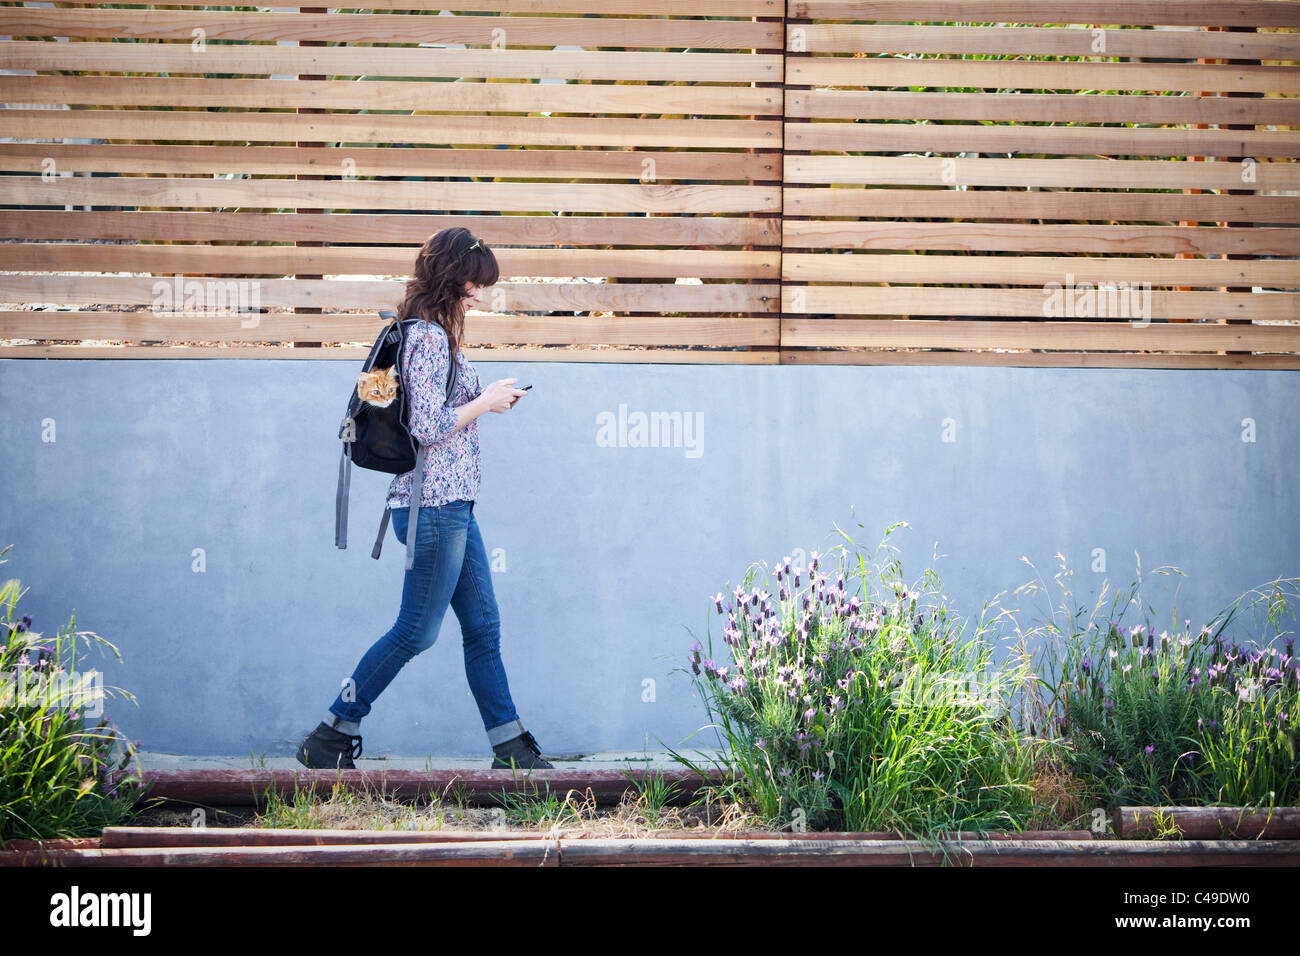 A woman walking down urban neighborhood sidewalk with a cat in her backpack. - Stock Image